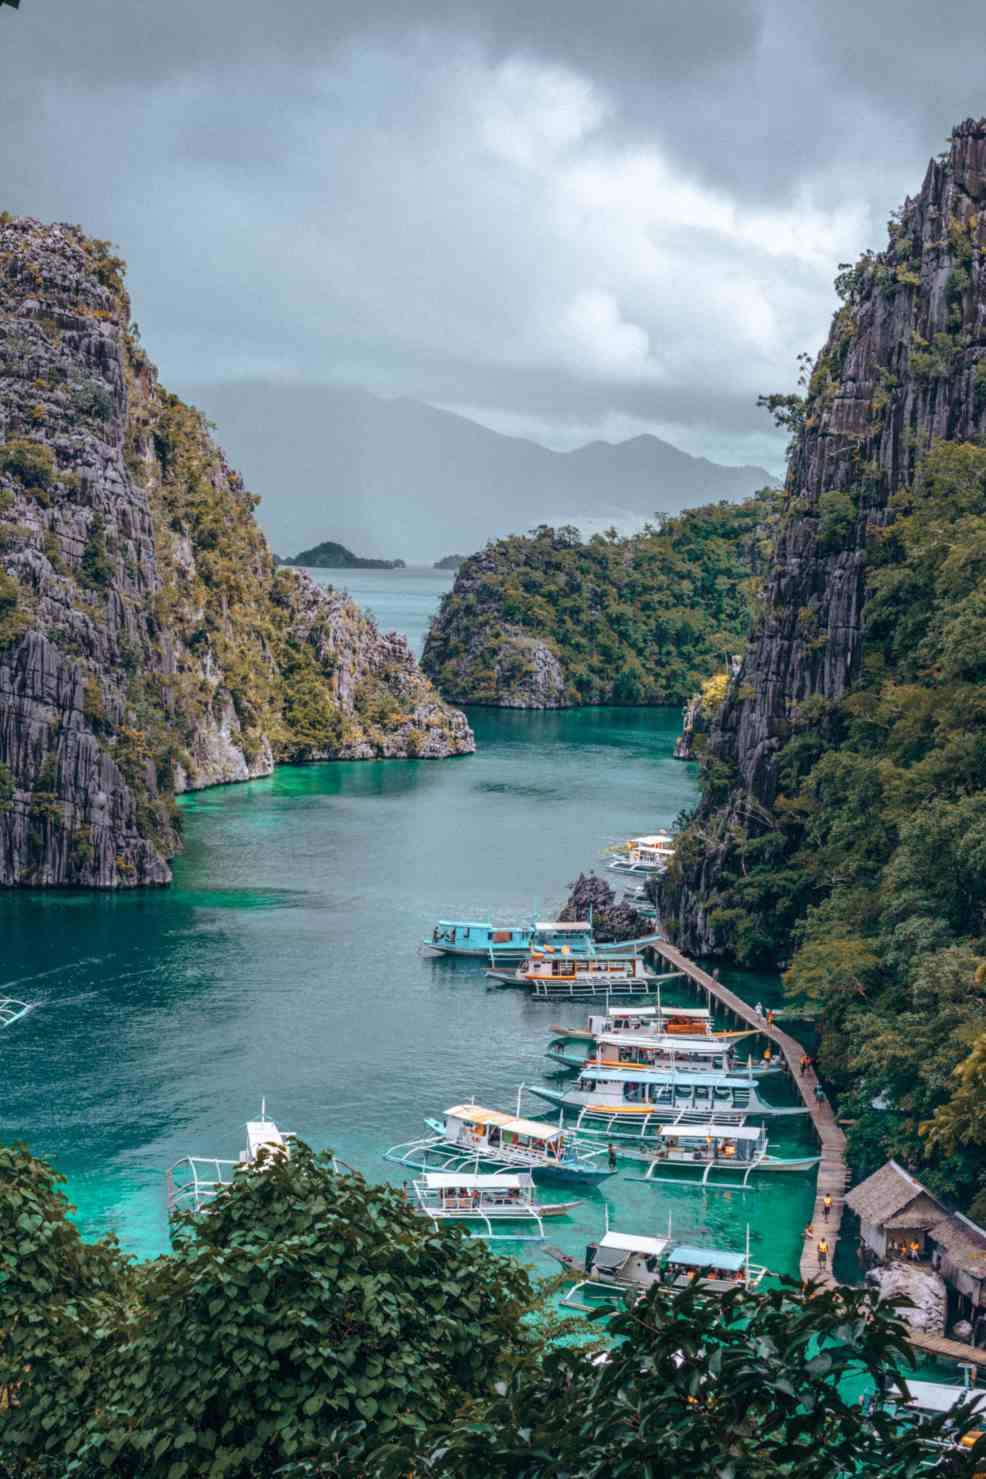 things to know before traveling to the philippines,  best places to visit in the philippines, Coron tourist spots in the philippines, places to visit in the philippines for couples